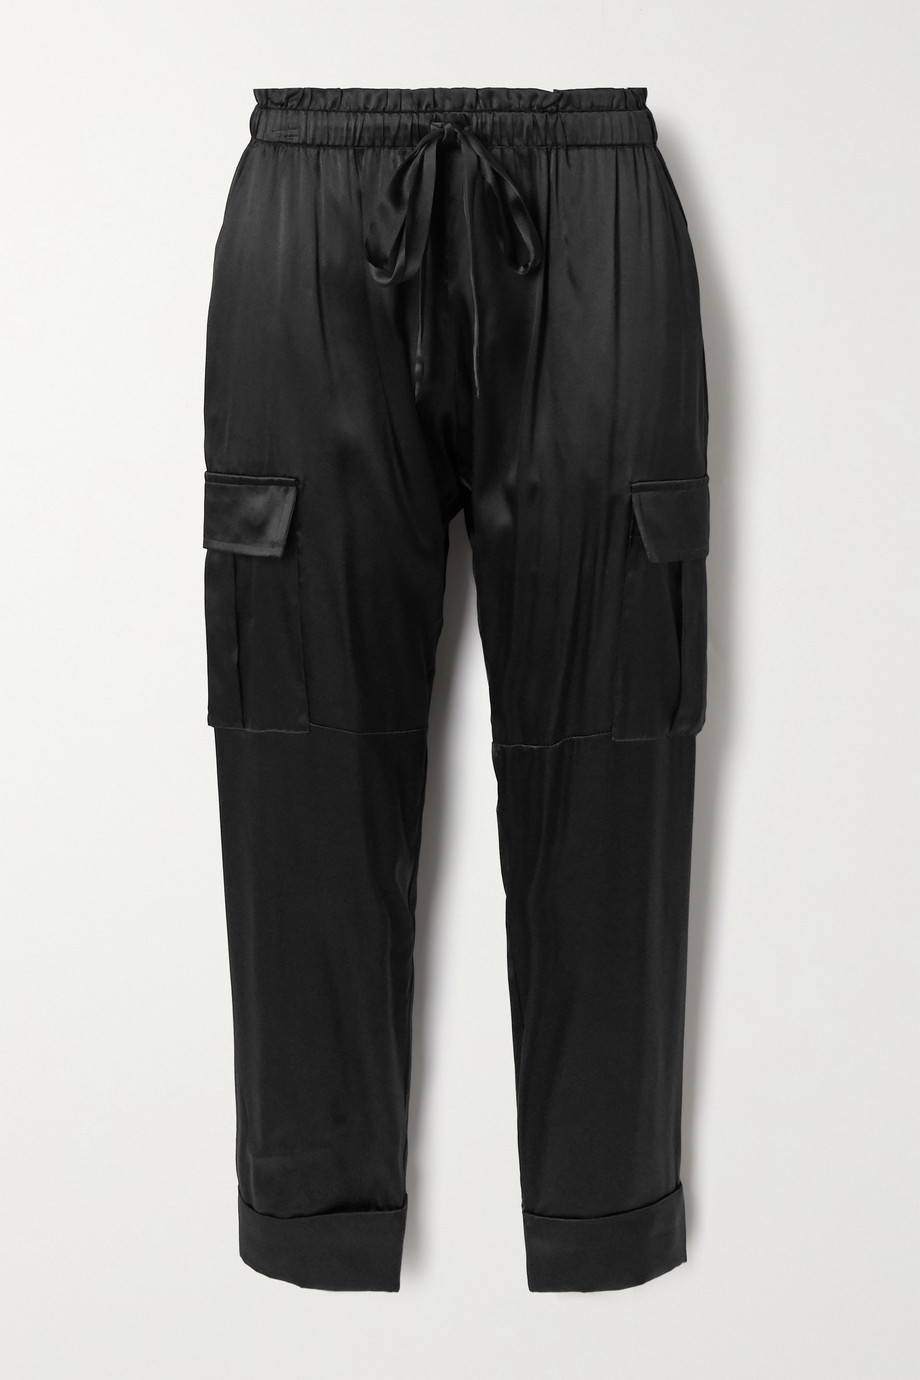 Cami NYC The Carmen silk-blend charmeuse track pants